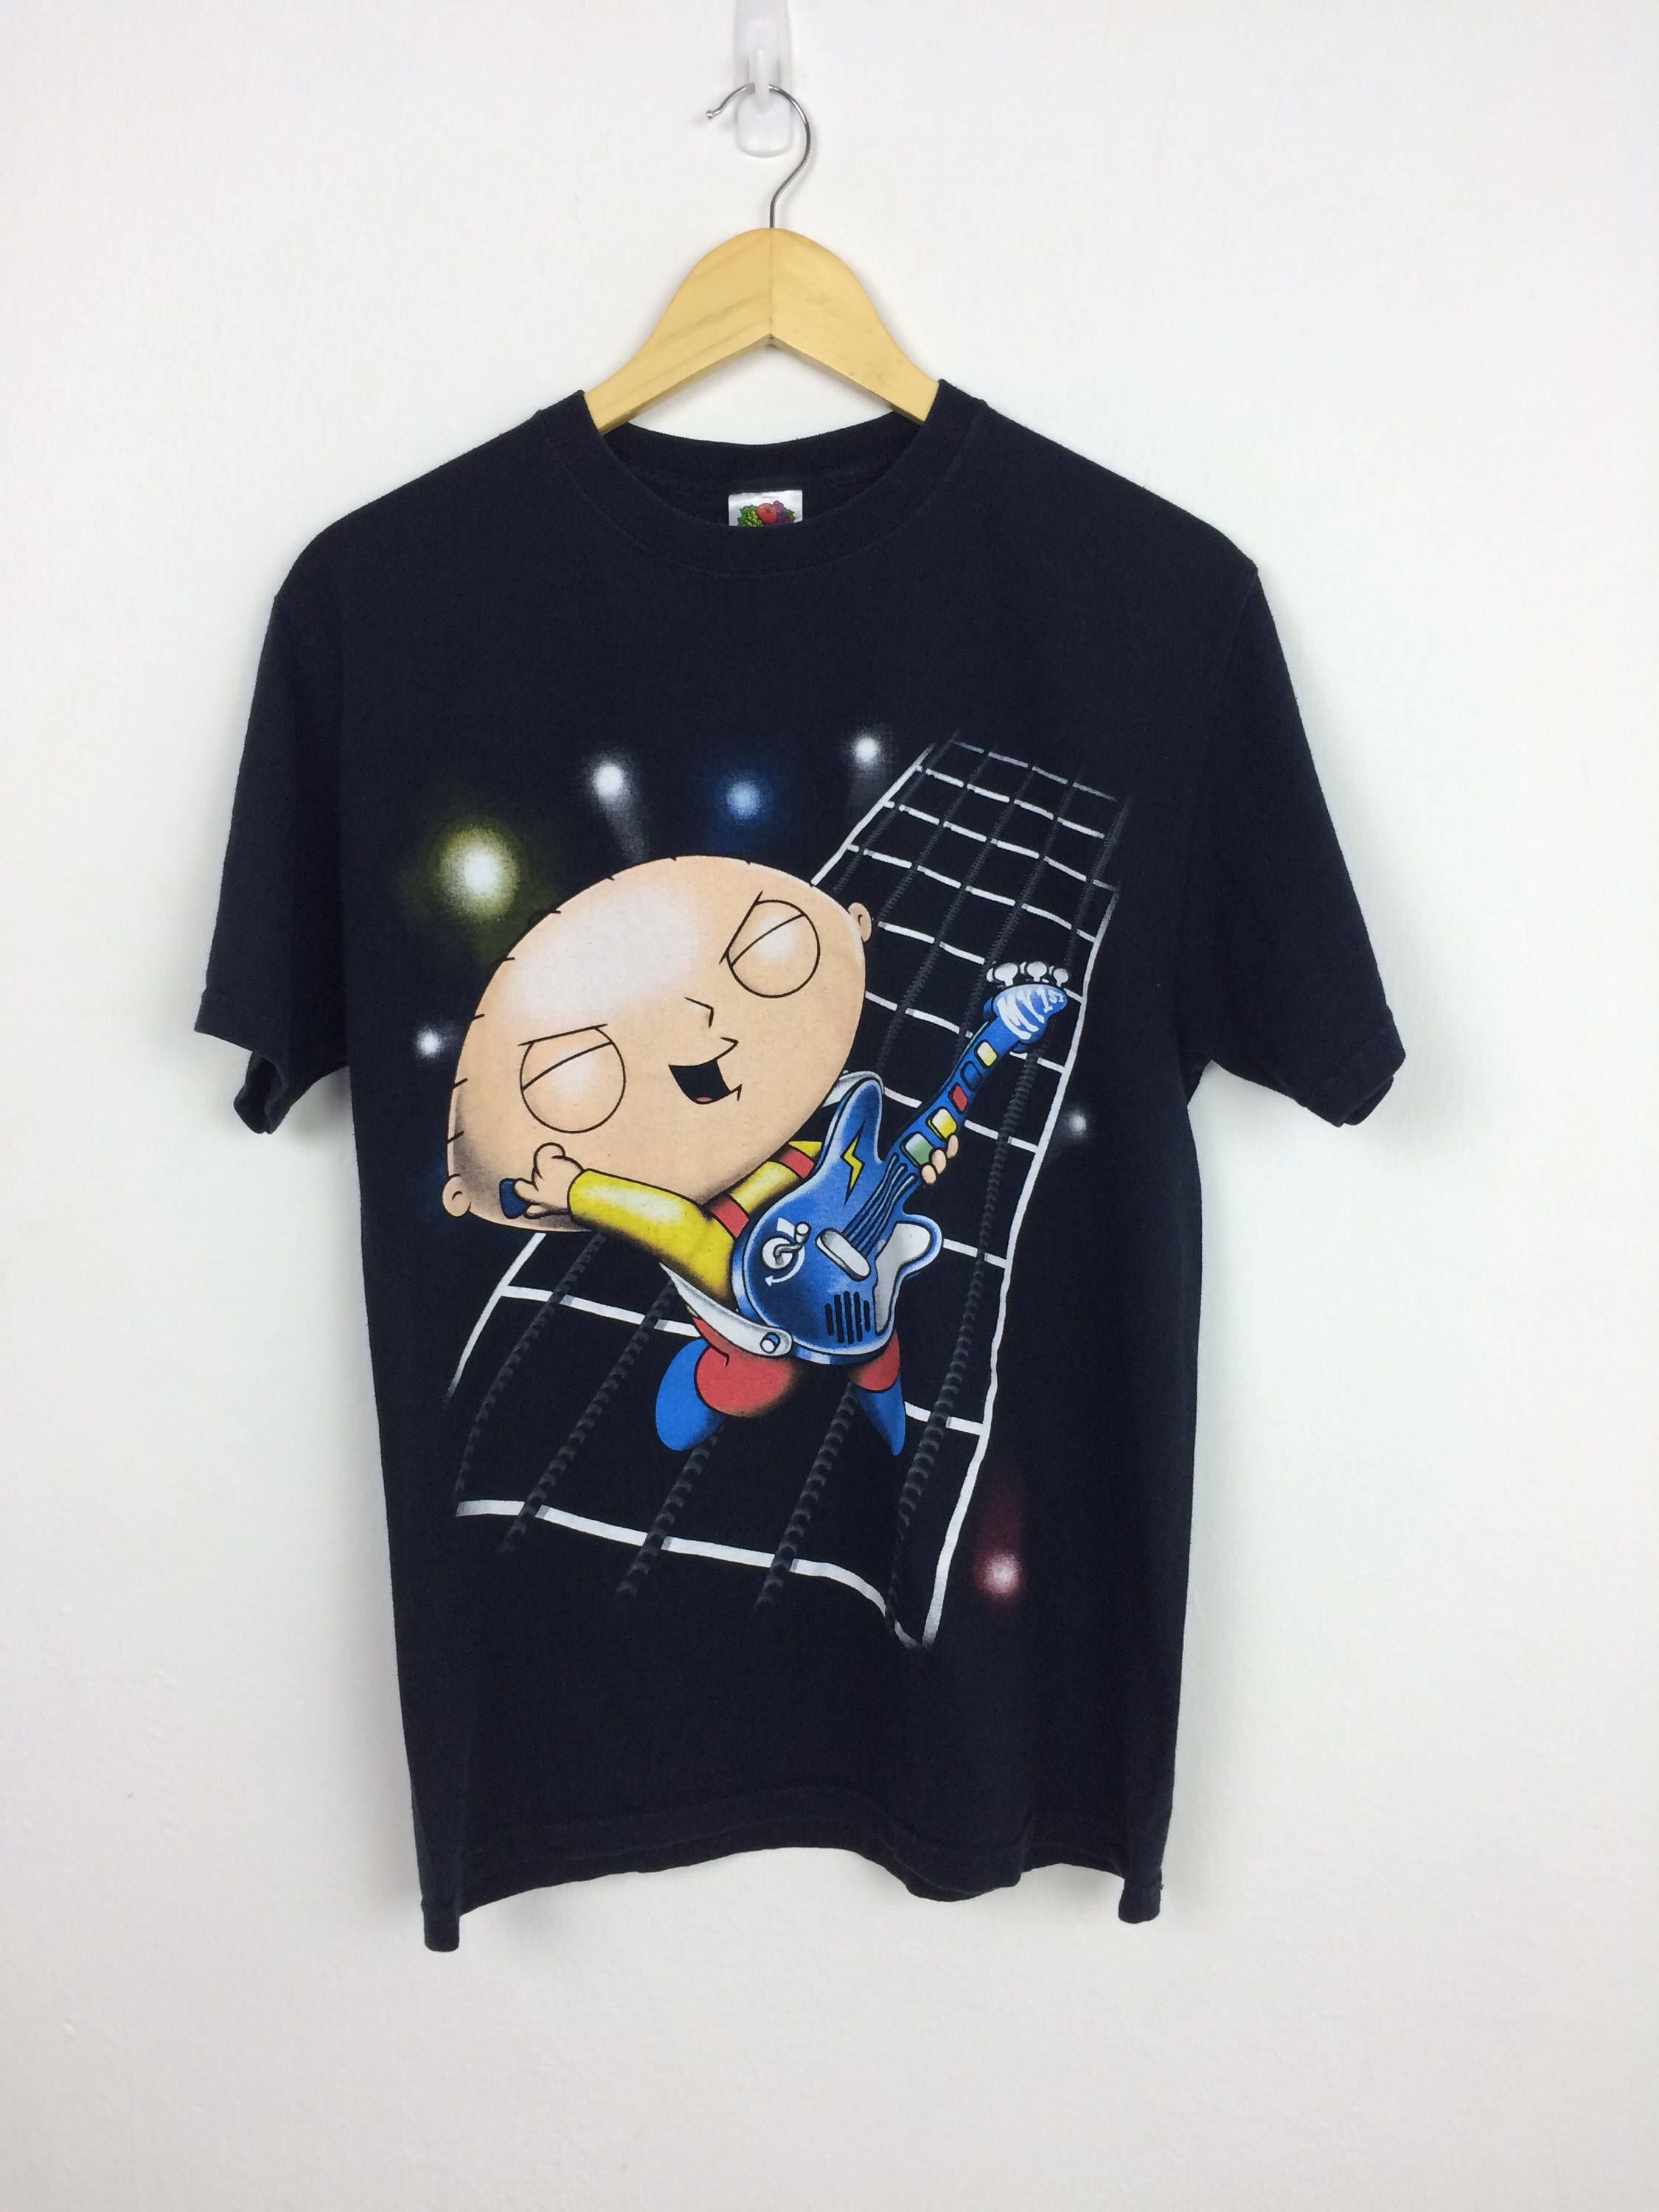 39b10350c Excited to share the latest addition to my #etsy shop: Vintage Family Guy  Stewie Griffin T Shirt Size M #clothing #men #tshirt #pinkpanther #taz  #tweety ...